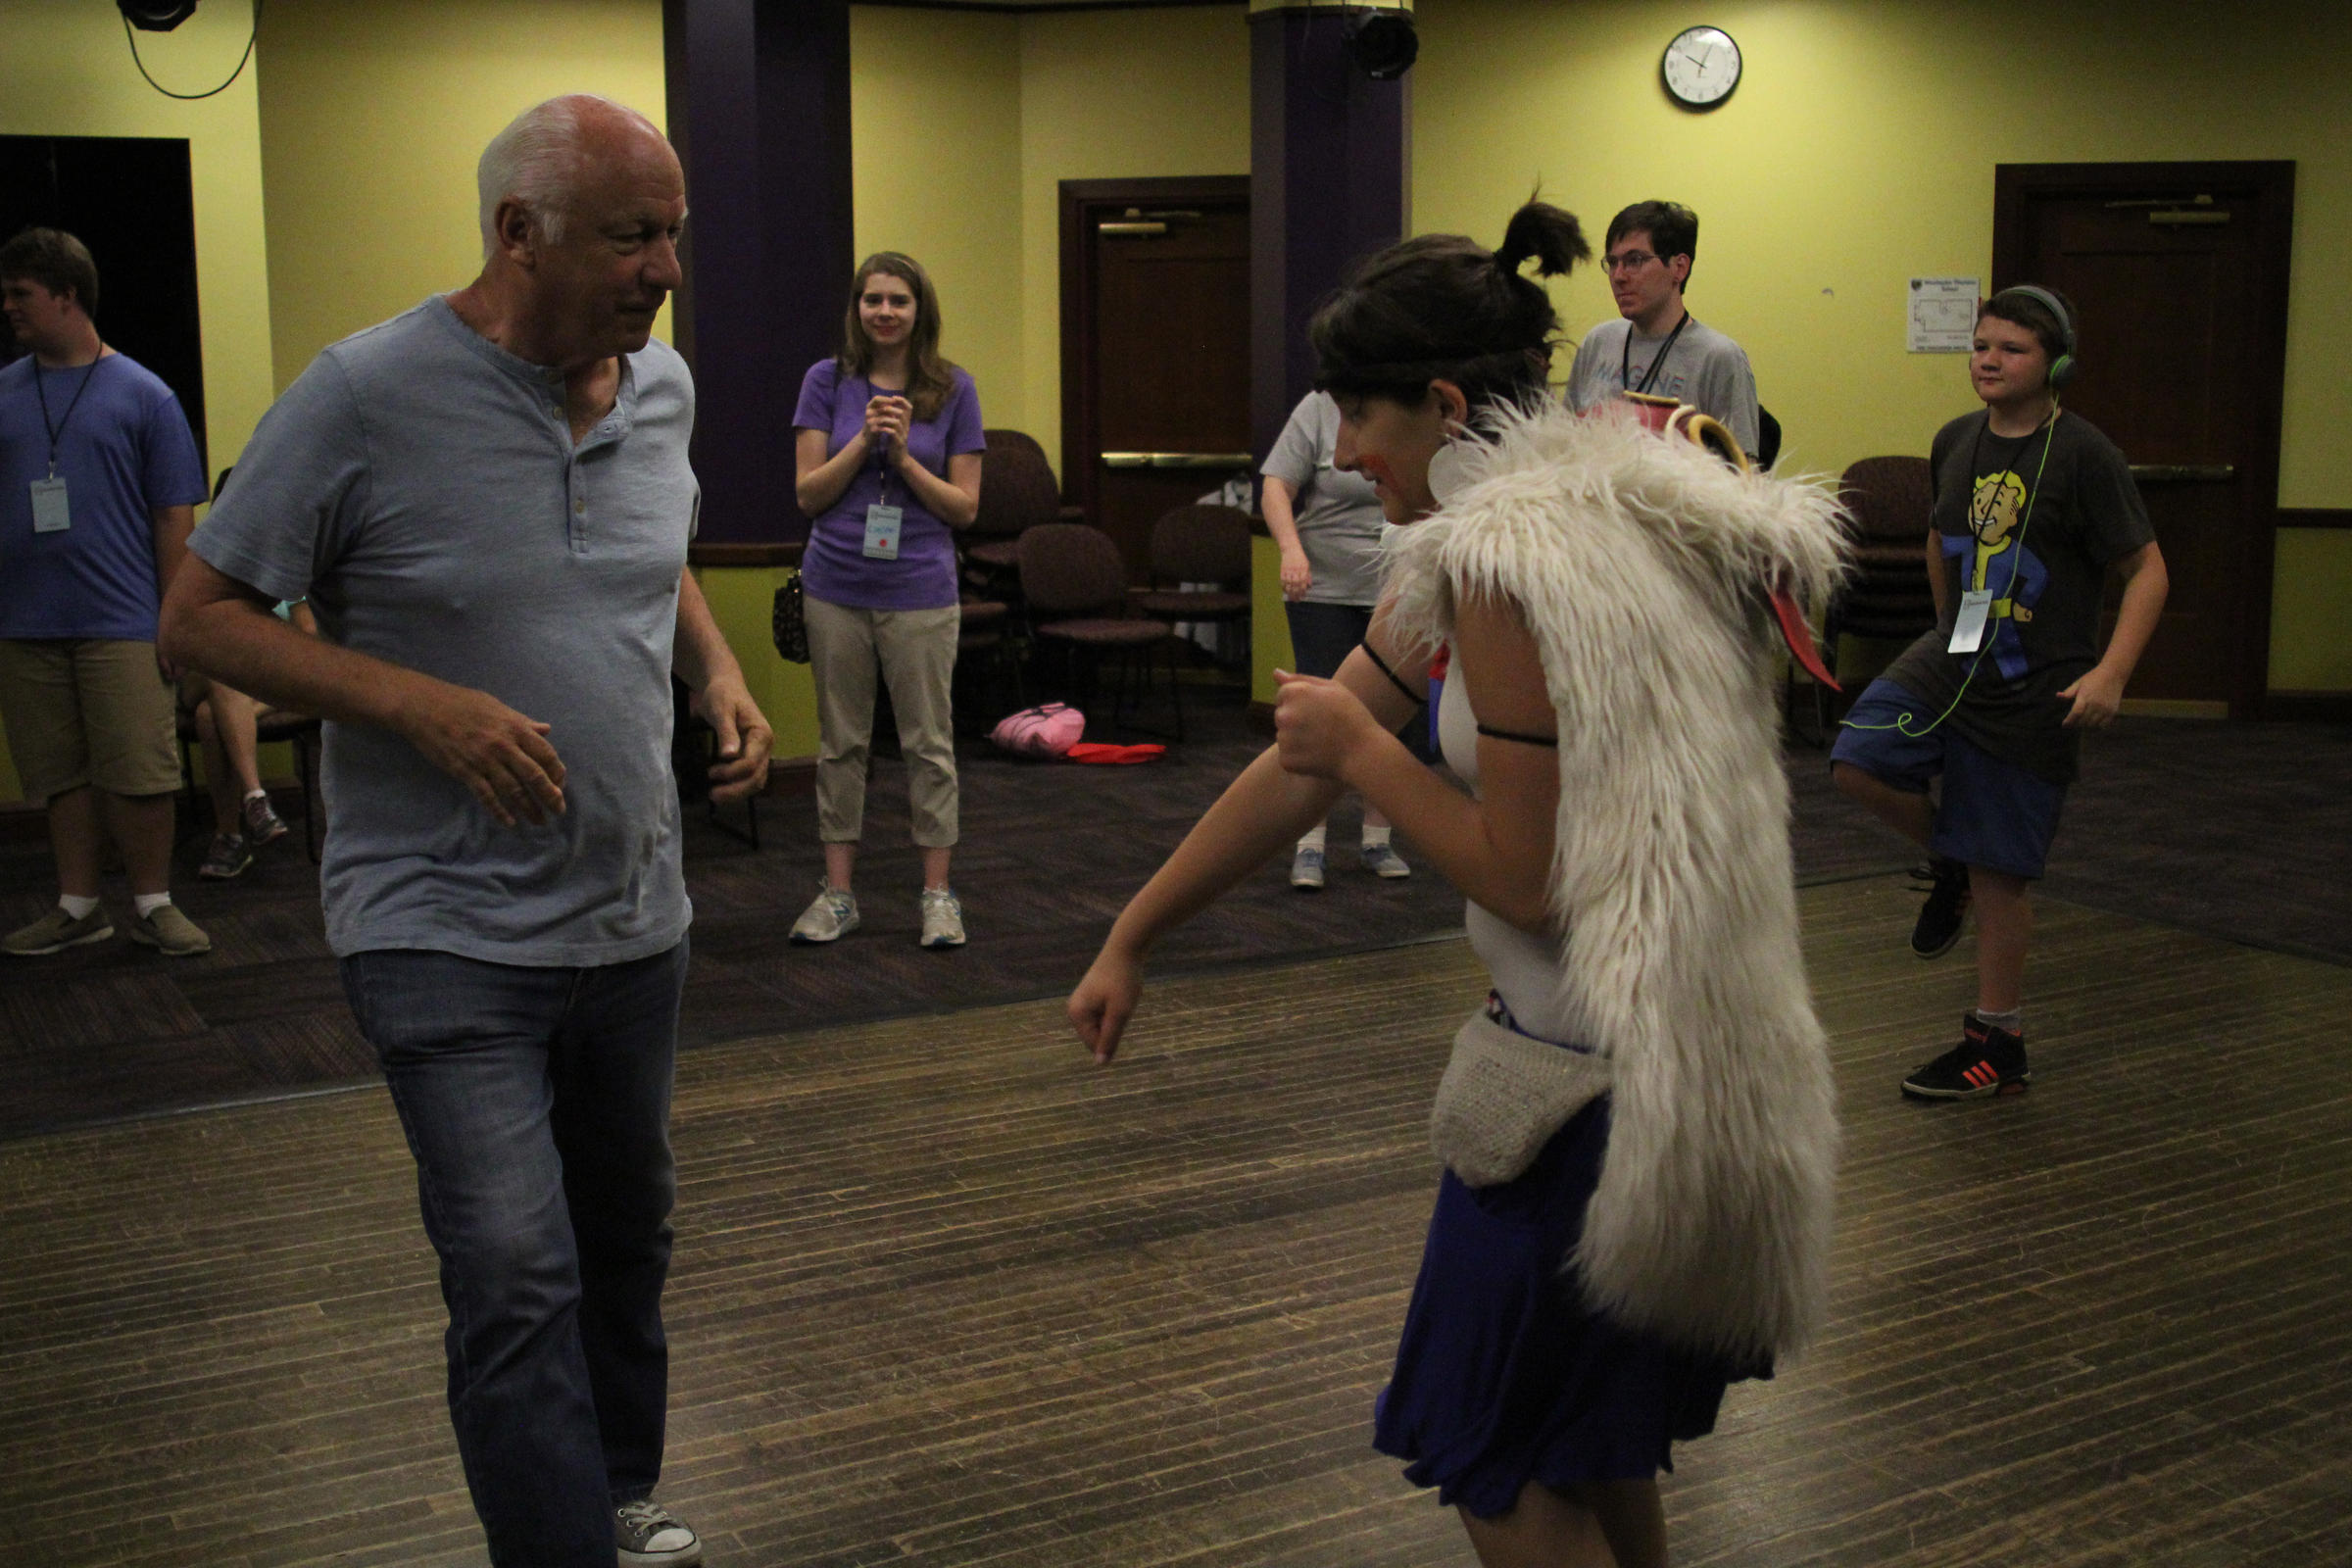 Camp Director Joey Travolta Dances With A Camper During A Daily Dance Party